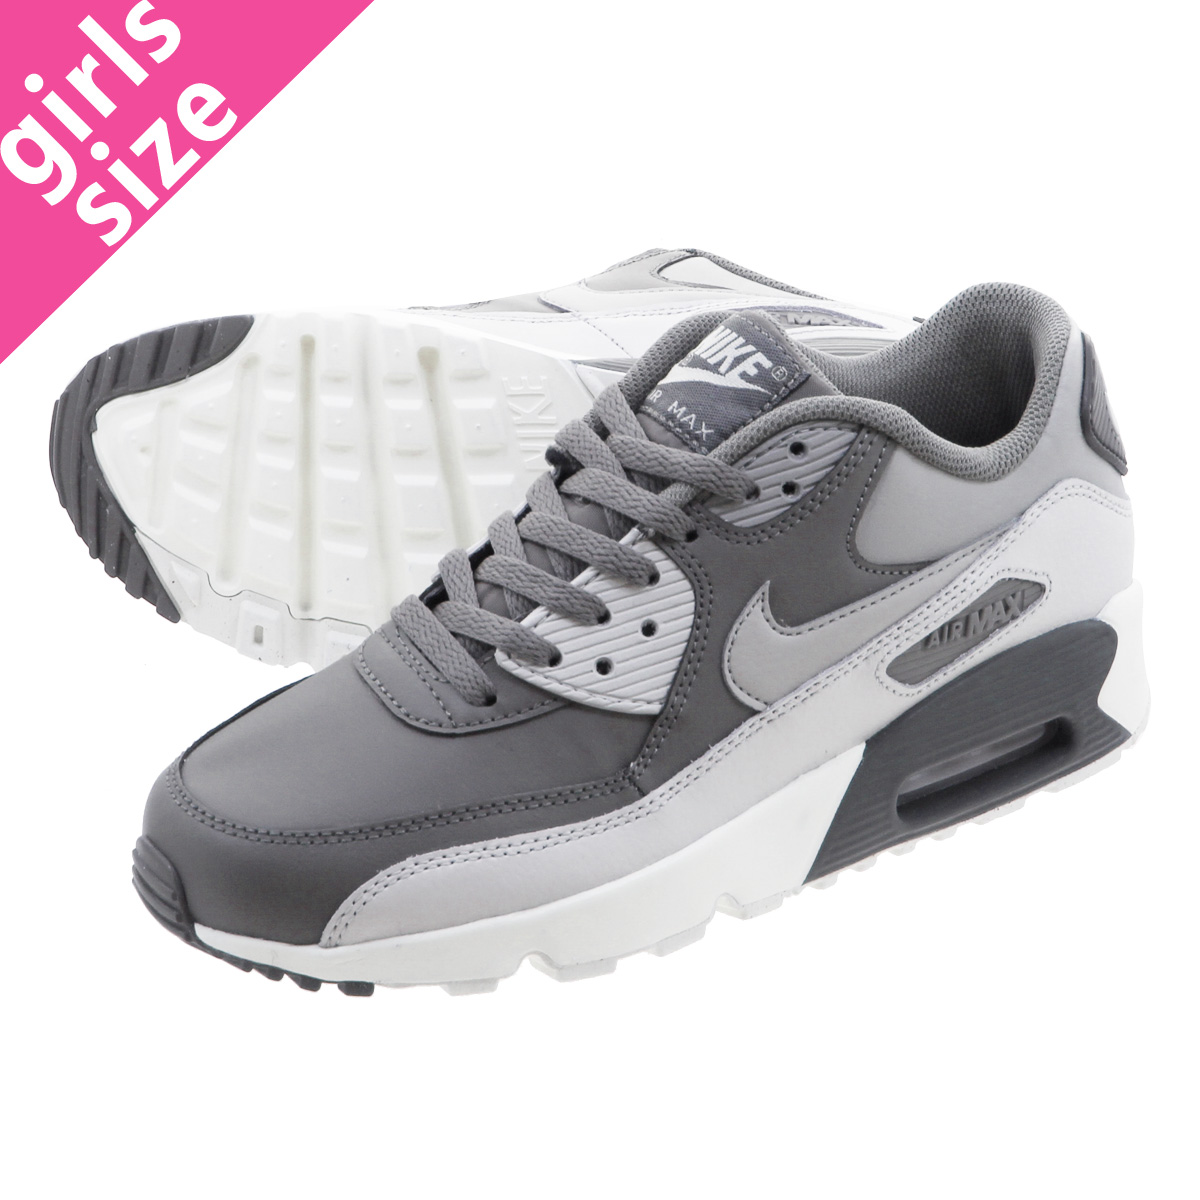 sale retailer 062b0 79f48 NIKE AIR MAX 90 LTR GS Kie Ney AMAX 90 leather GS COOL GREY WOLF GREY  833,412-013